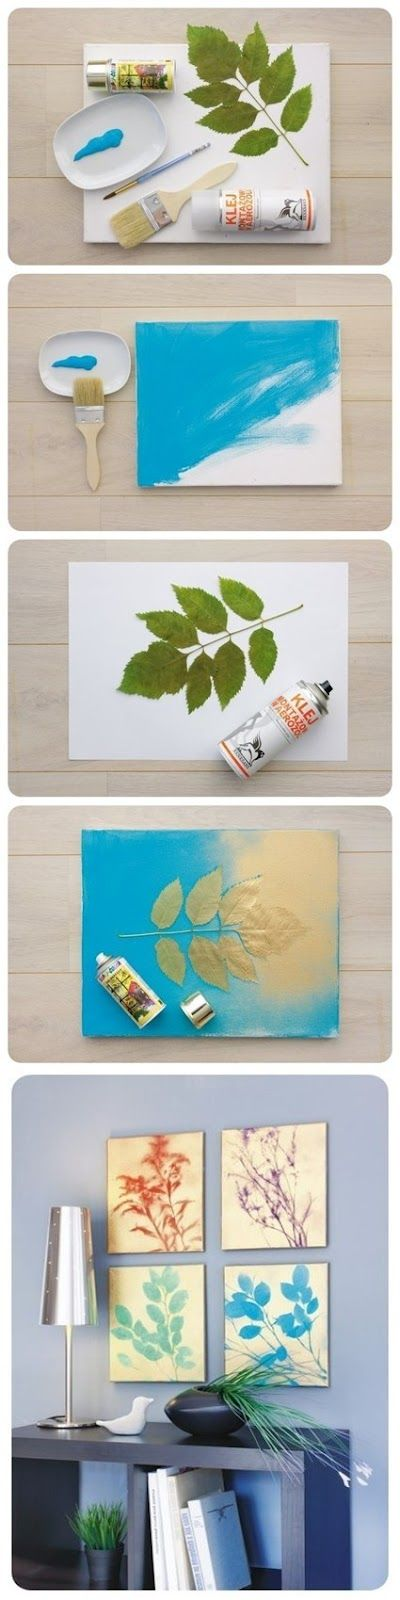 DIY Stenciled Nature Wall Art on Canvas. I'm totally doing this this summer!